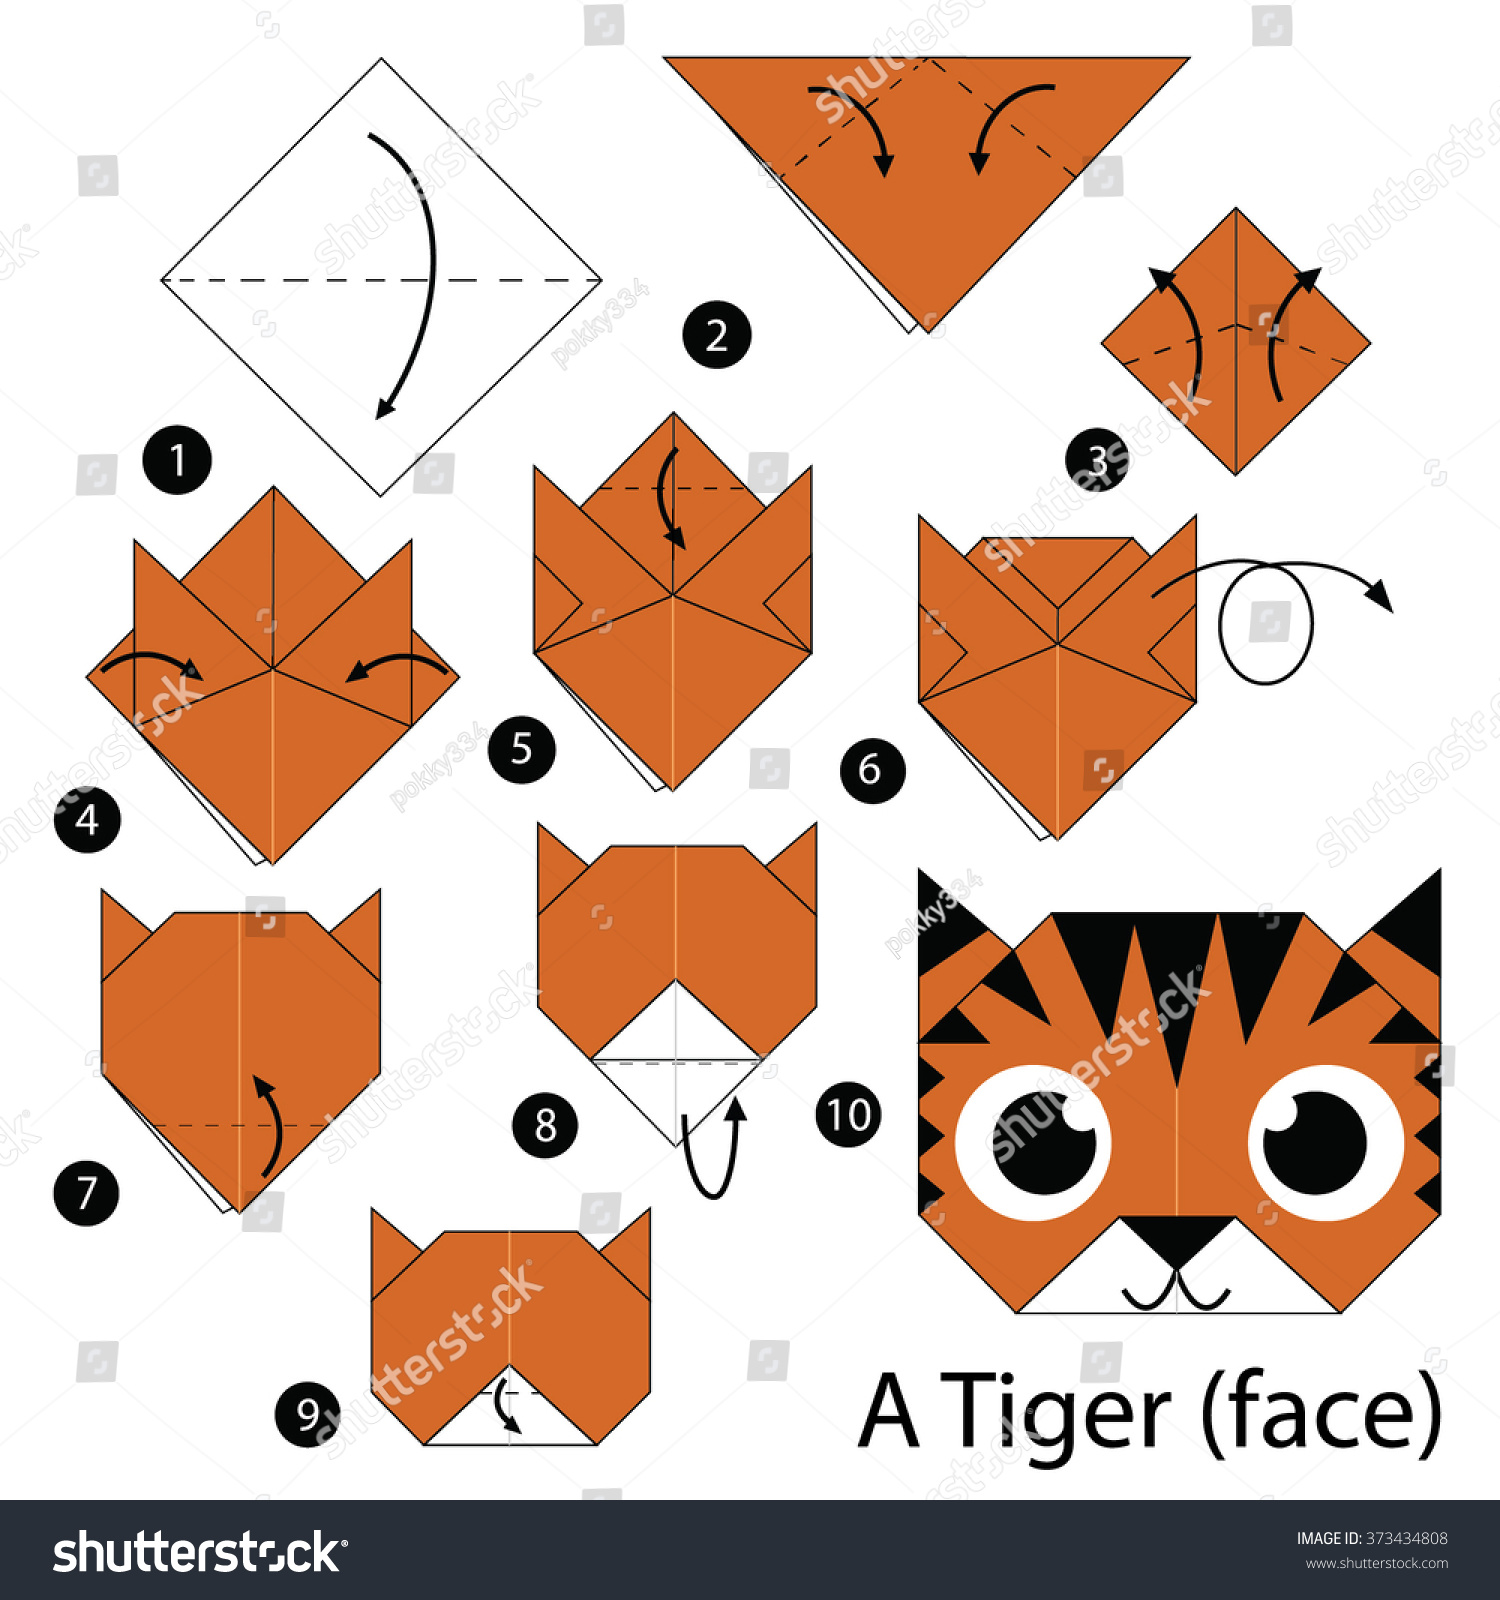 Step By Step Instructions How To Make Origami A Tiger (face)